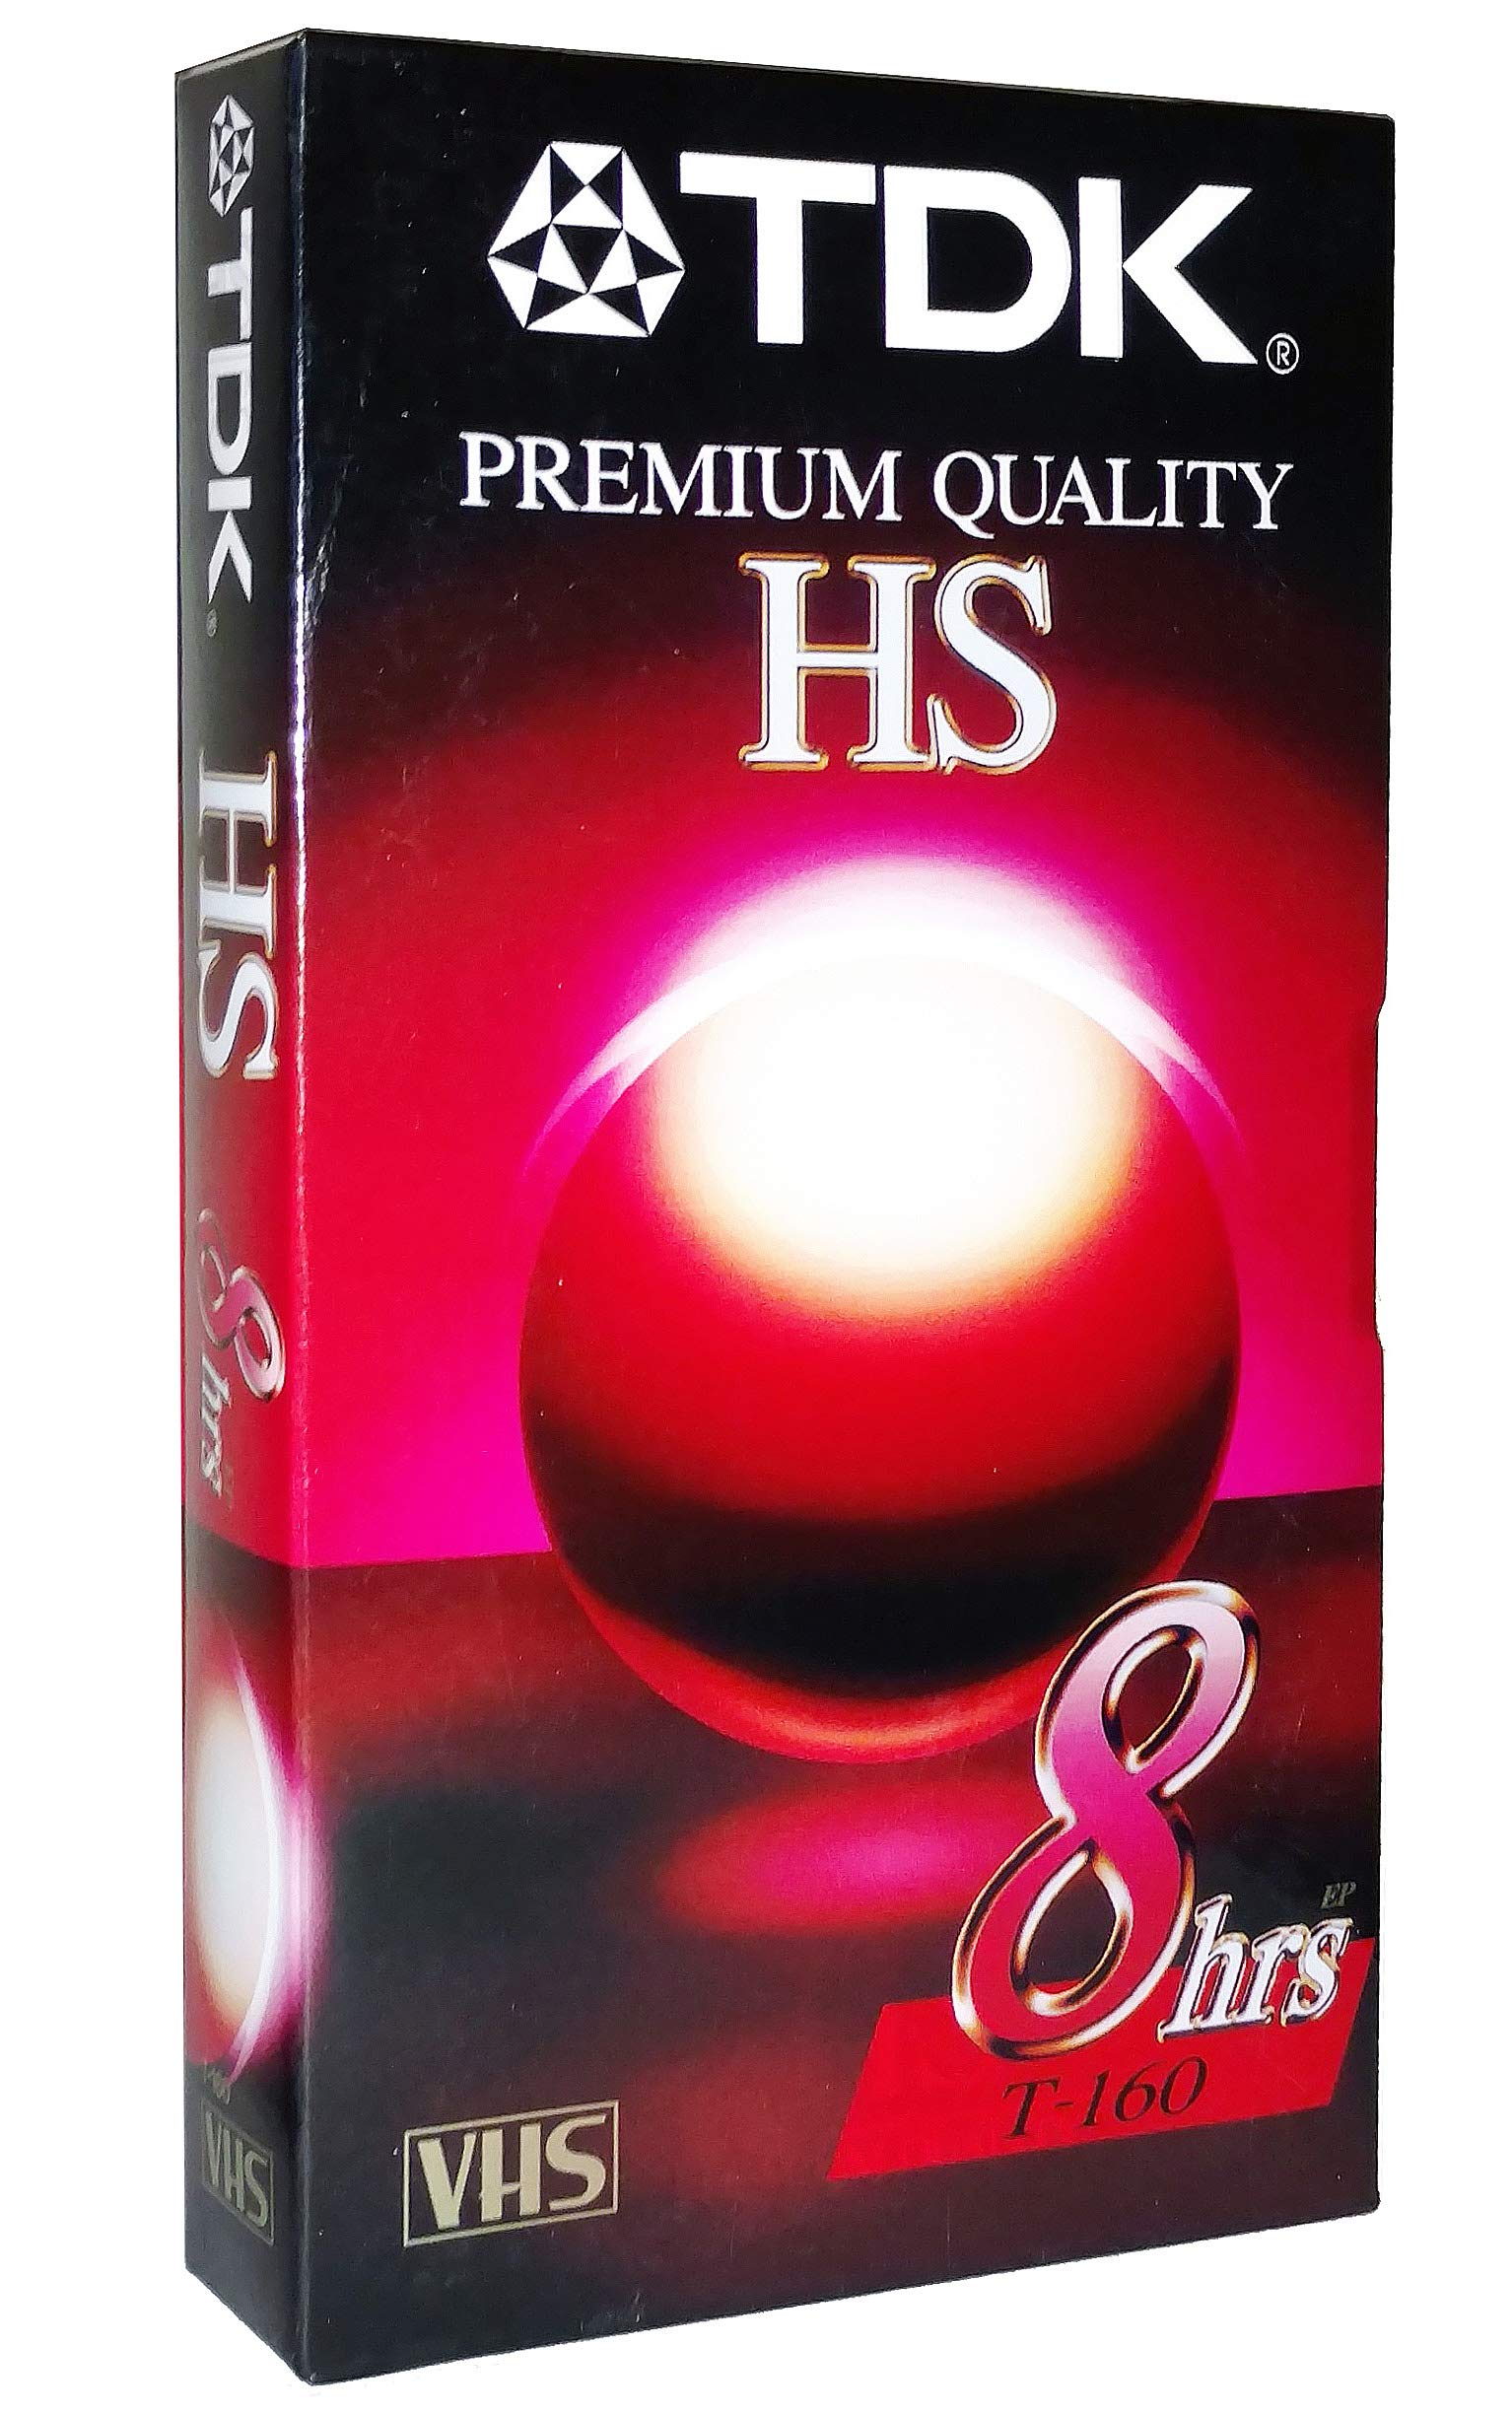 TDK Premium Quality HS T-160 8 Hour EP Video Cassette Tape - Ideal for everyday recording and playback of your favorite programs - High quality performance, even under repeated use by TDK